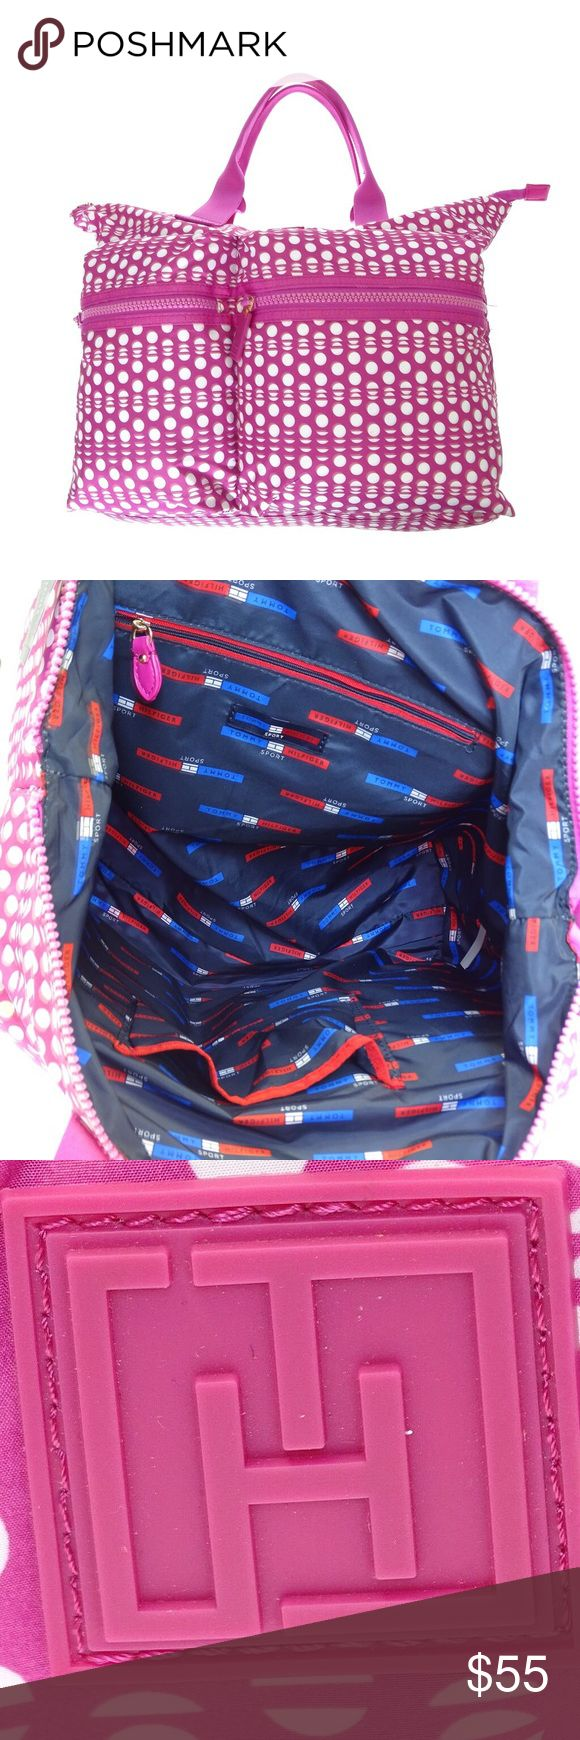 Tommy Hilfiger Polka Dot Pink Travel Gym Bag Z824. New with tags. Nylon Bag with multiple pockets. Lightweight Tommy Hilfiger Bags Totes